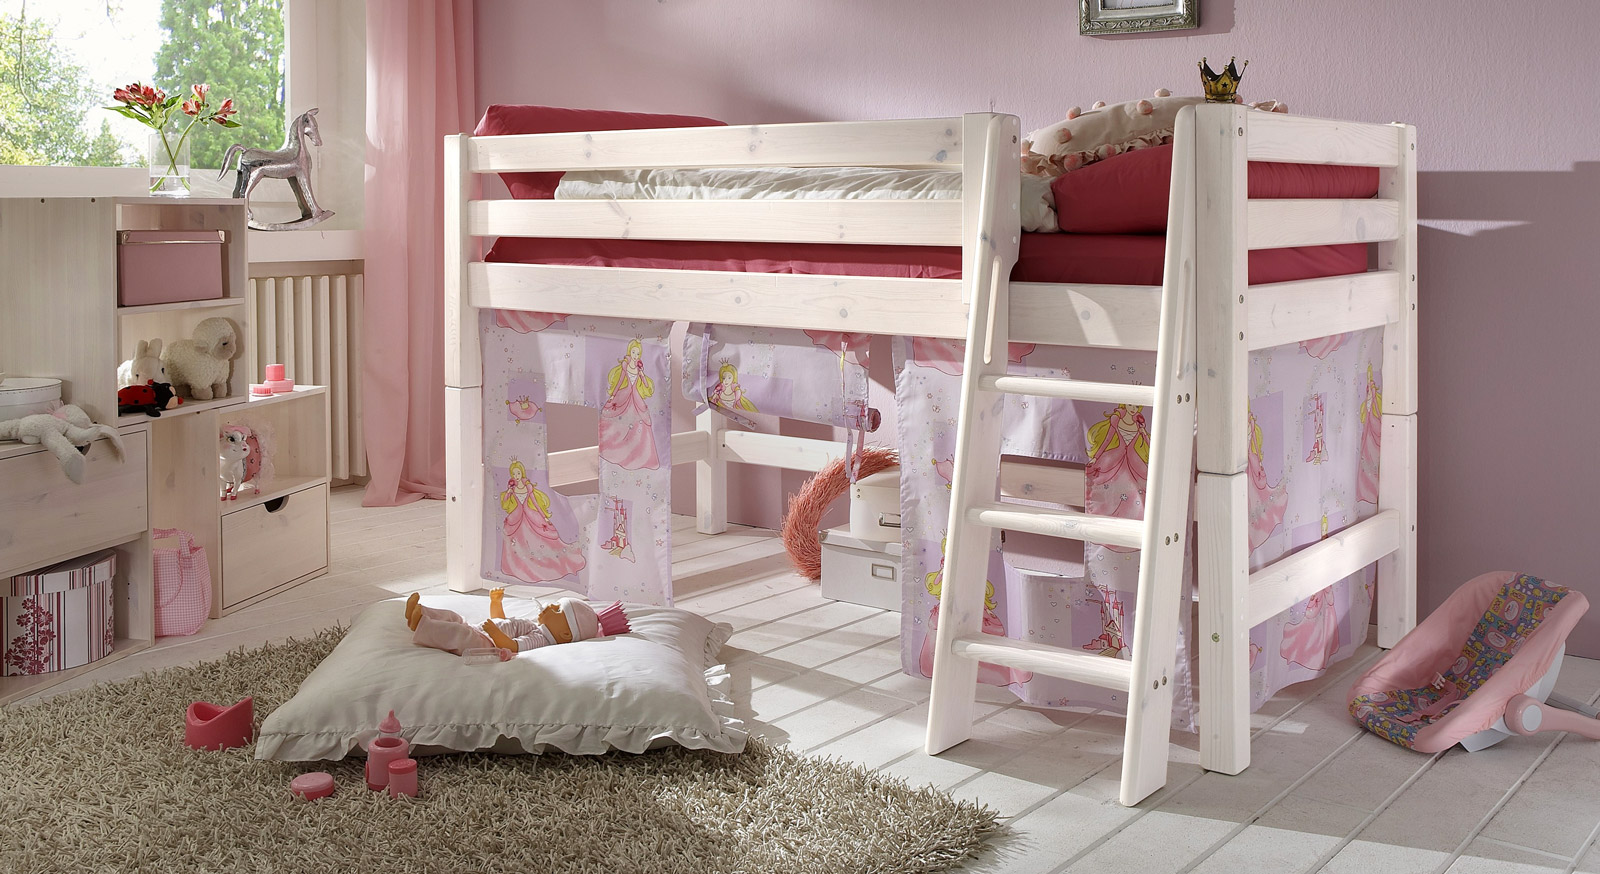 kinderzimmer komplett hochbett kinder prinzessin gunstig kaufen kinderzimmer mit hochbett. Black Bedroom Furniture Sets. Home Design Ideas